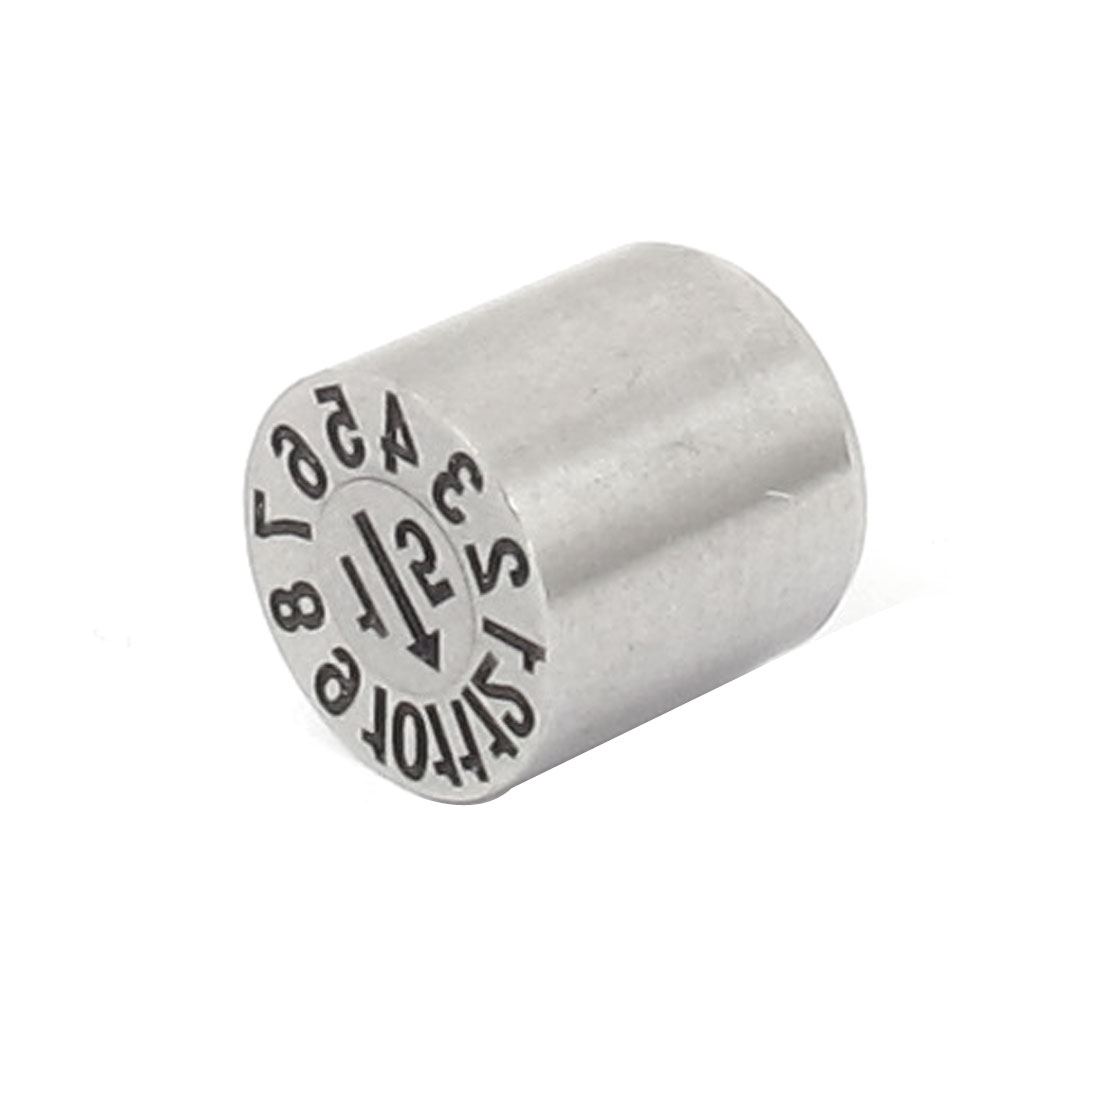 M10 Silver Tone Stainless Steel Number 1-12 Month Year Mold Date Stamp Inserts